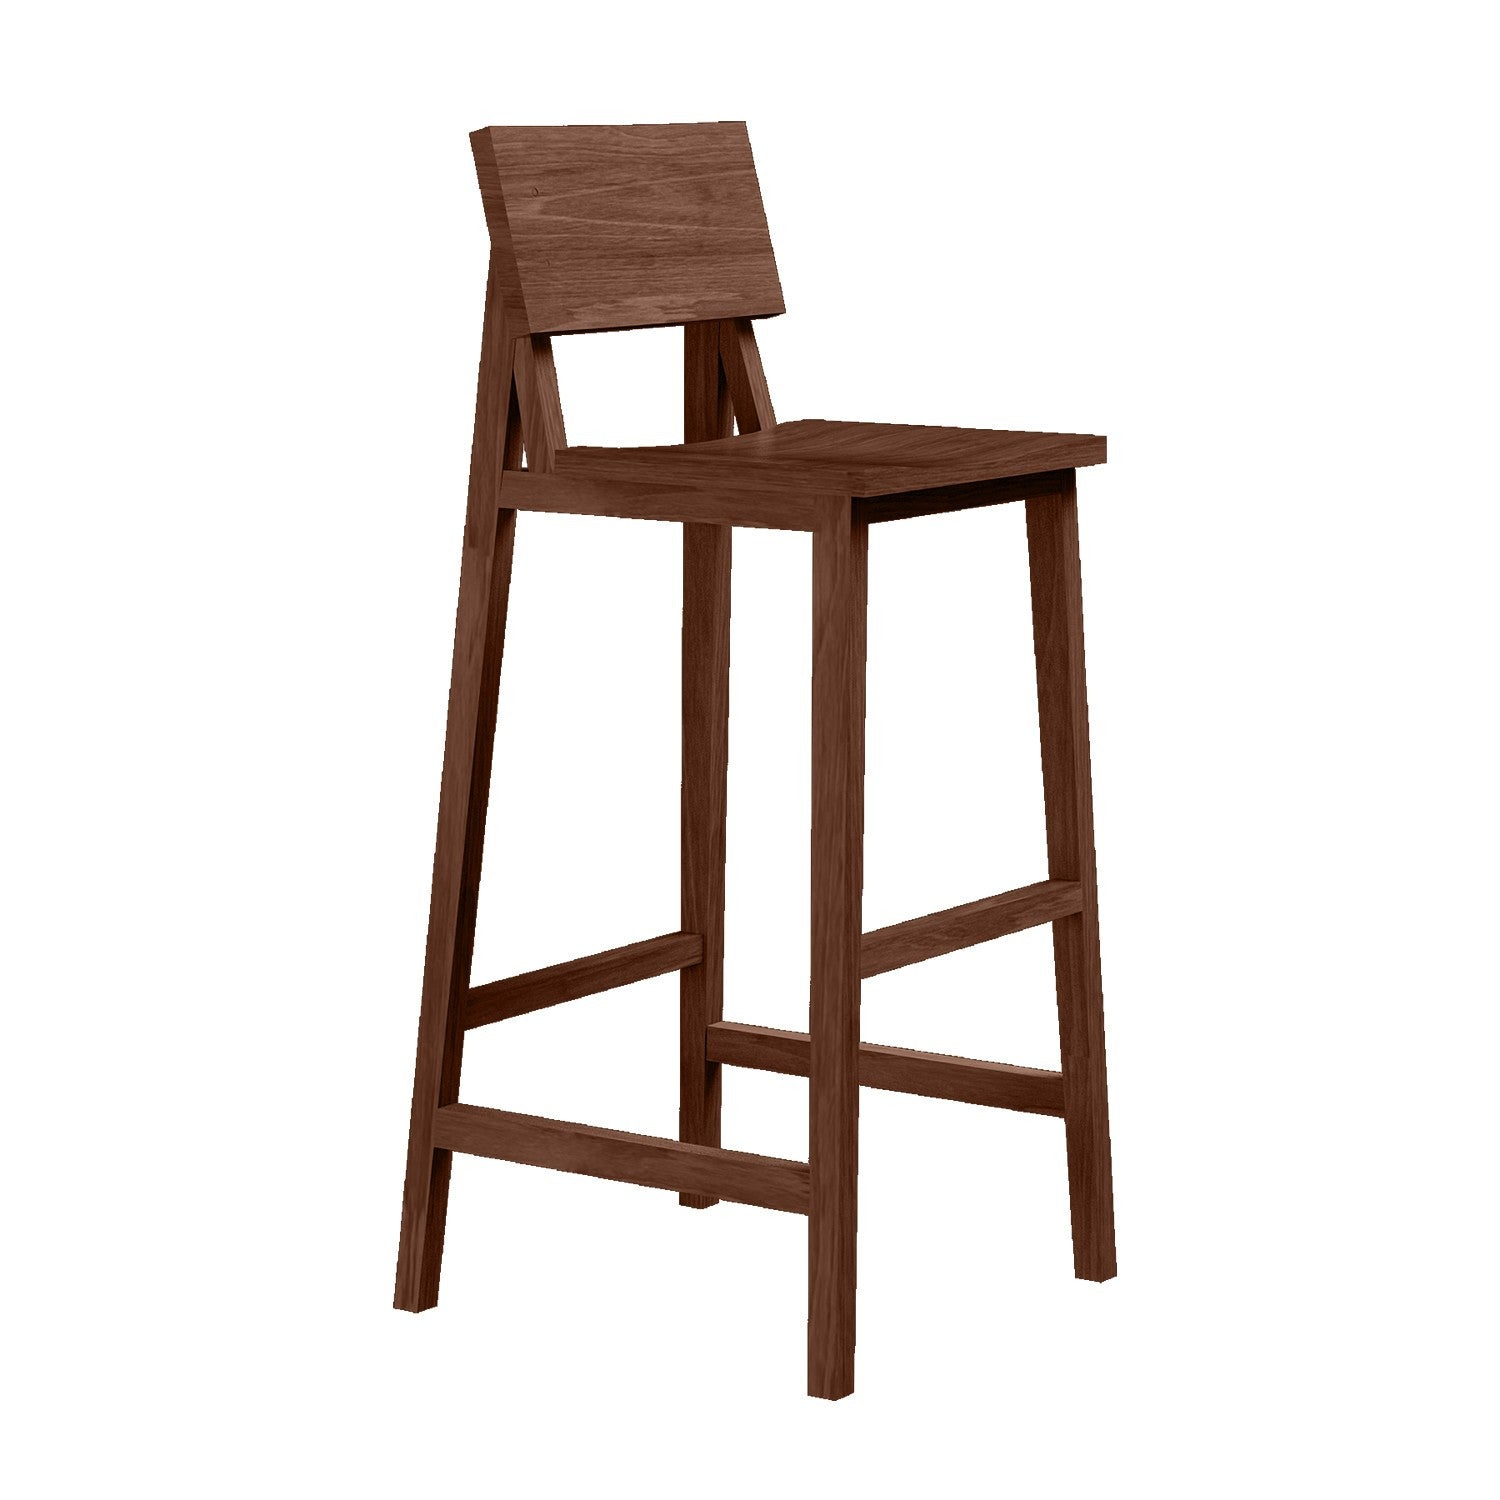 Teak N4 High Chair